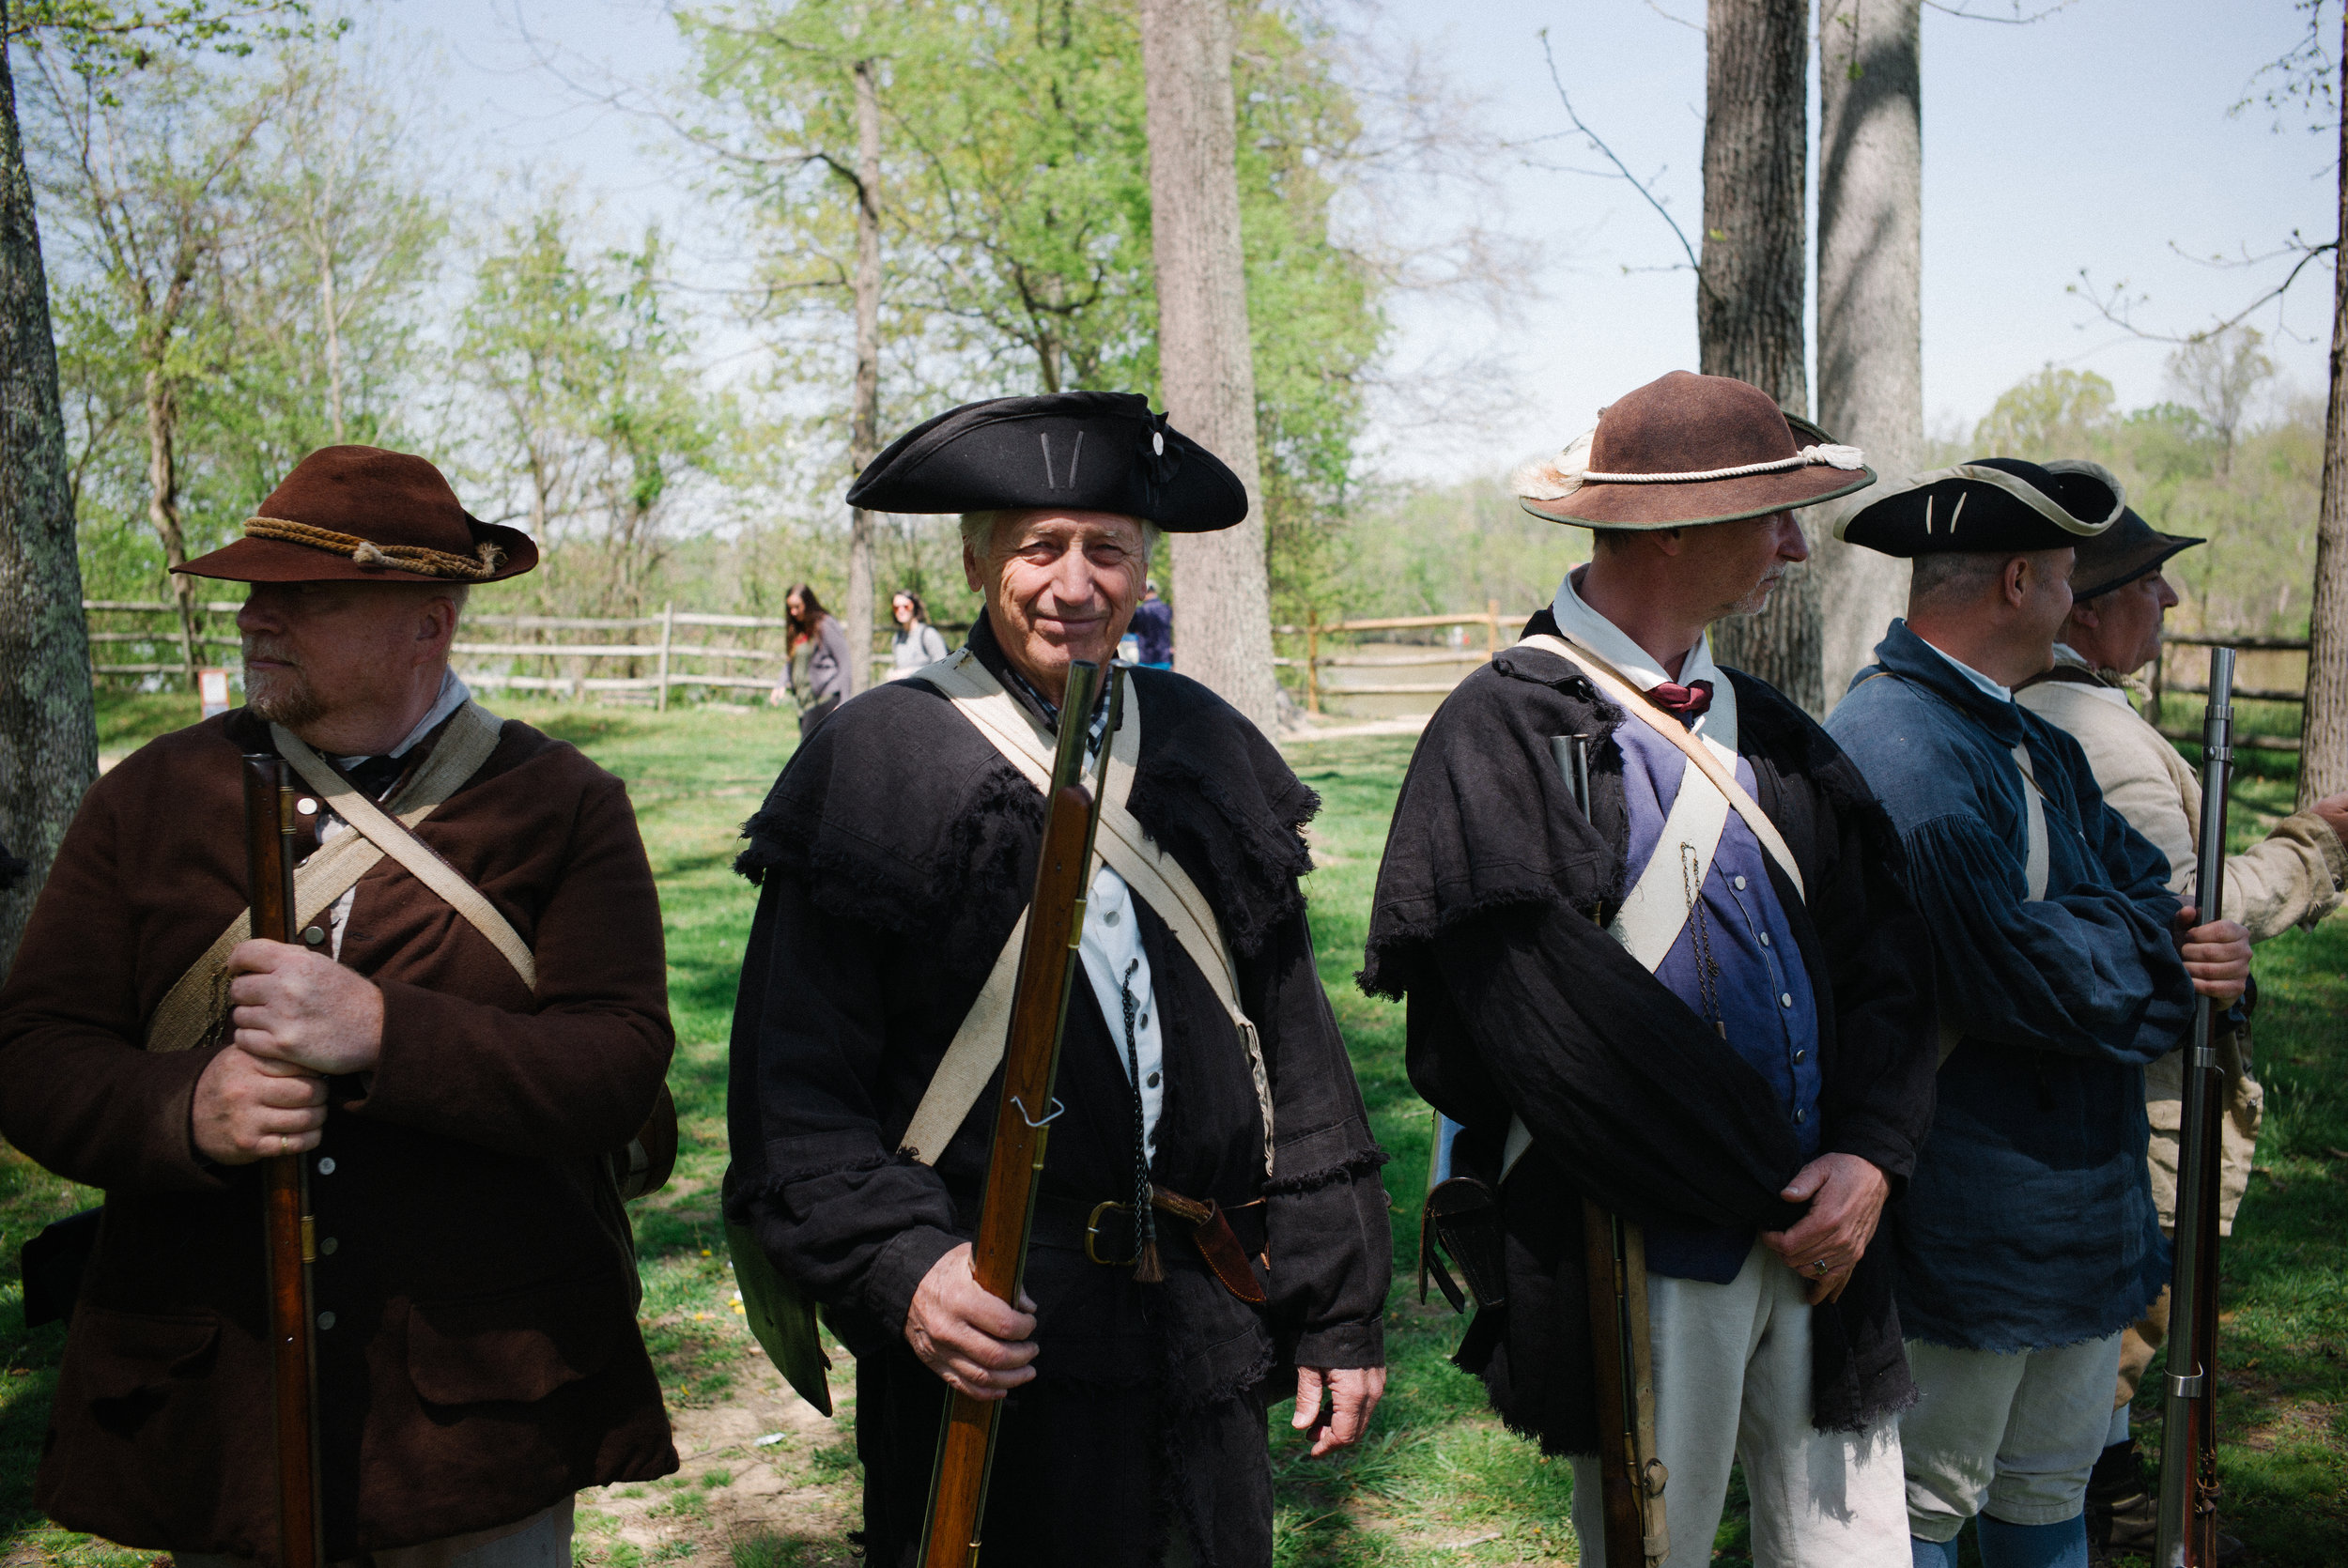 Militia re-ennactors, after performing a firing demonstration.